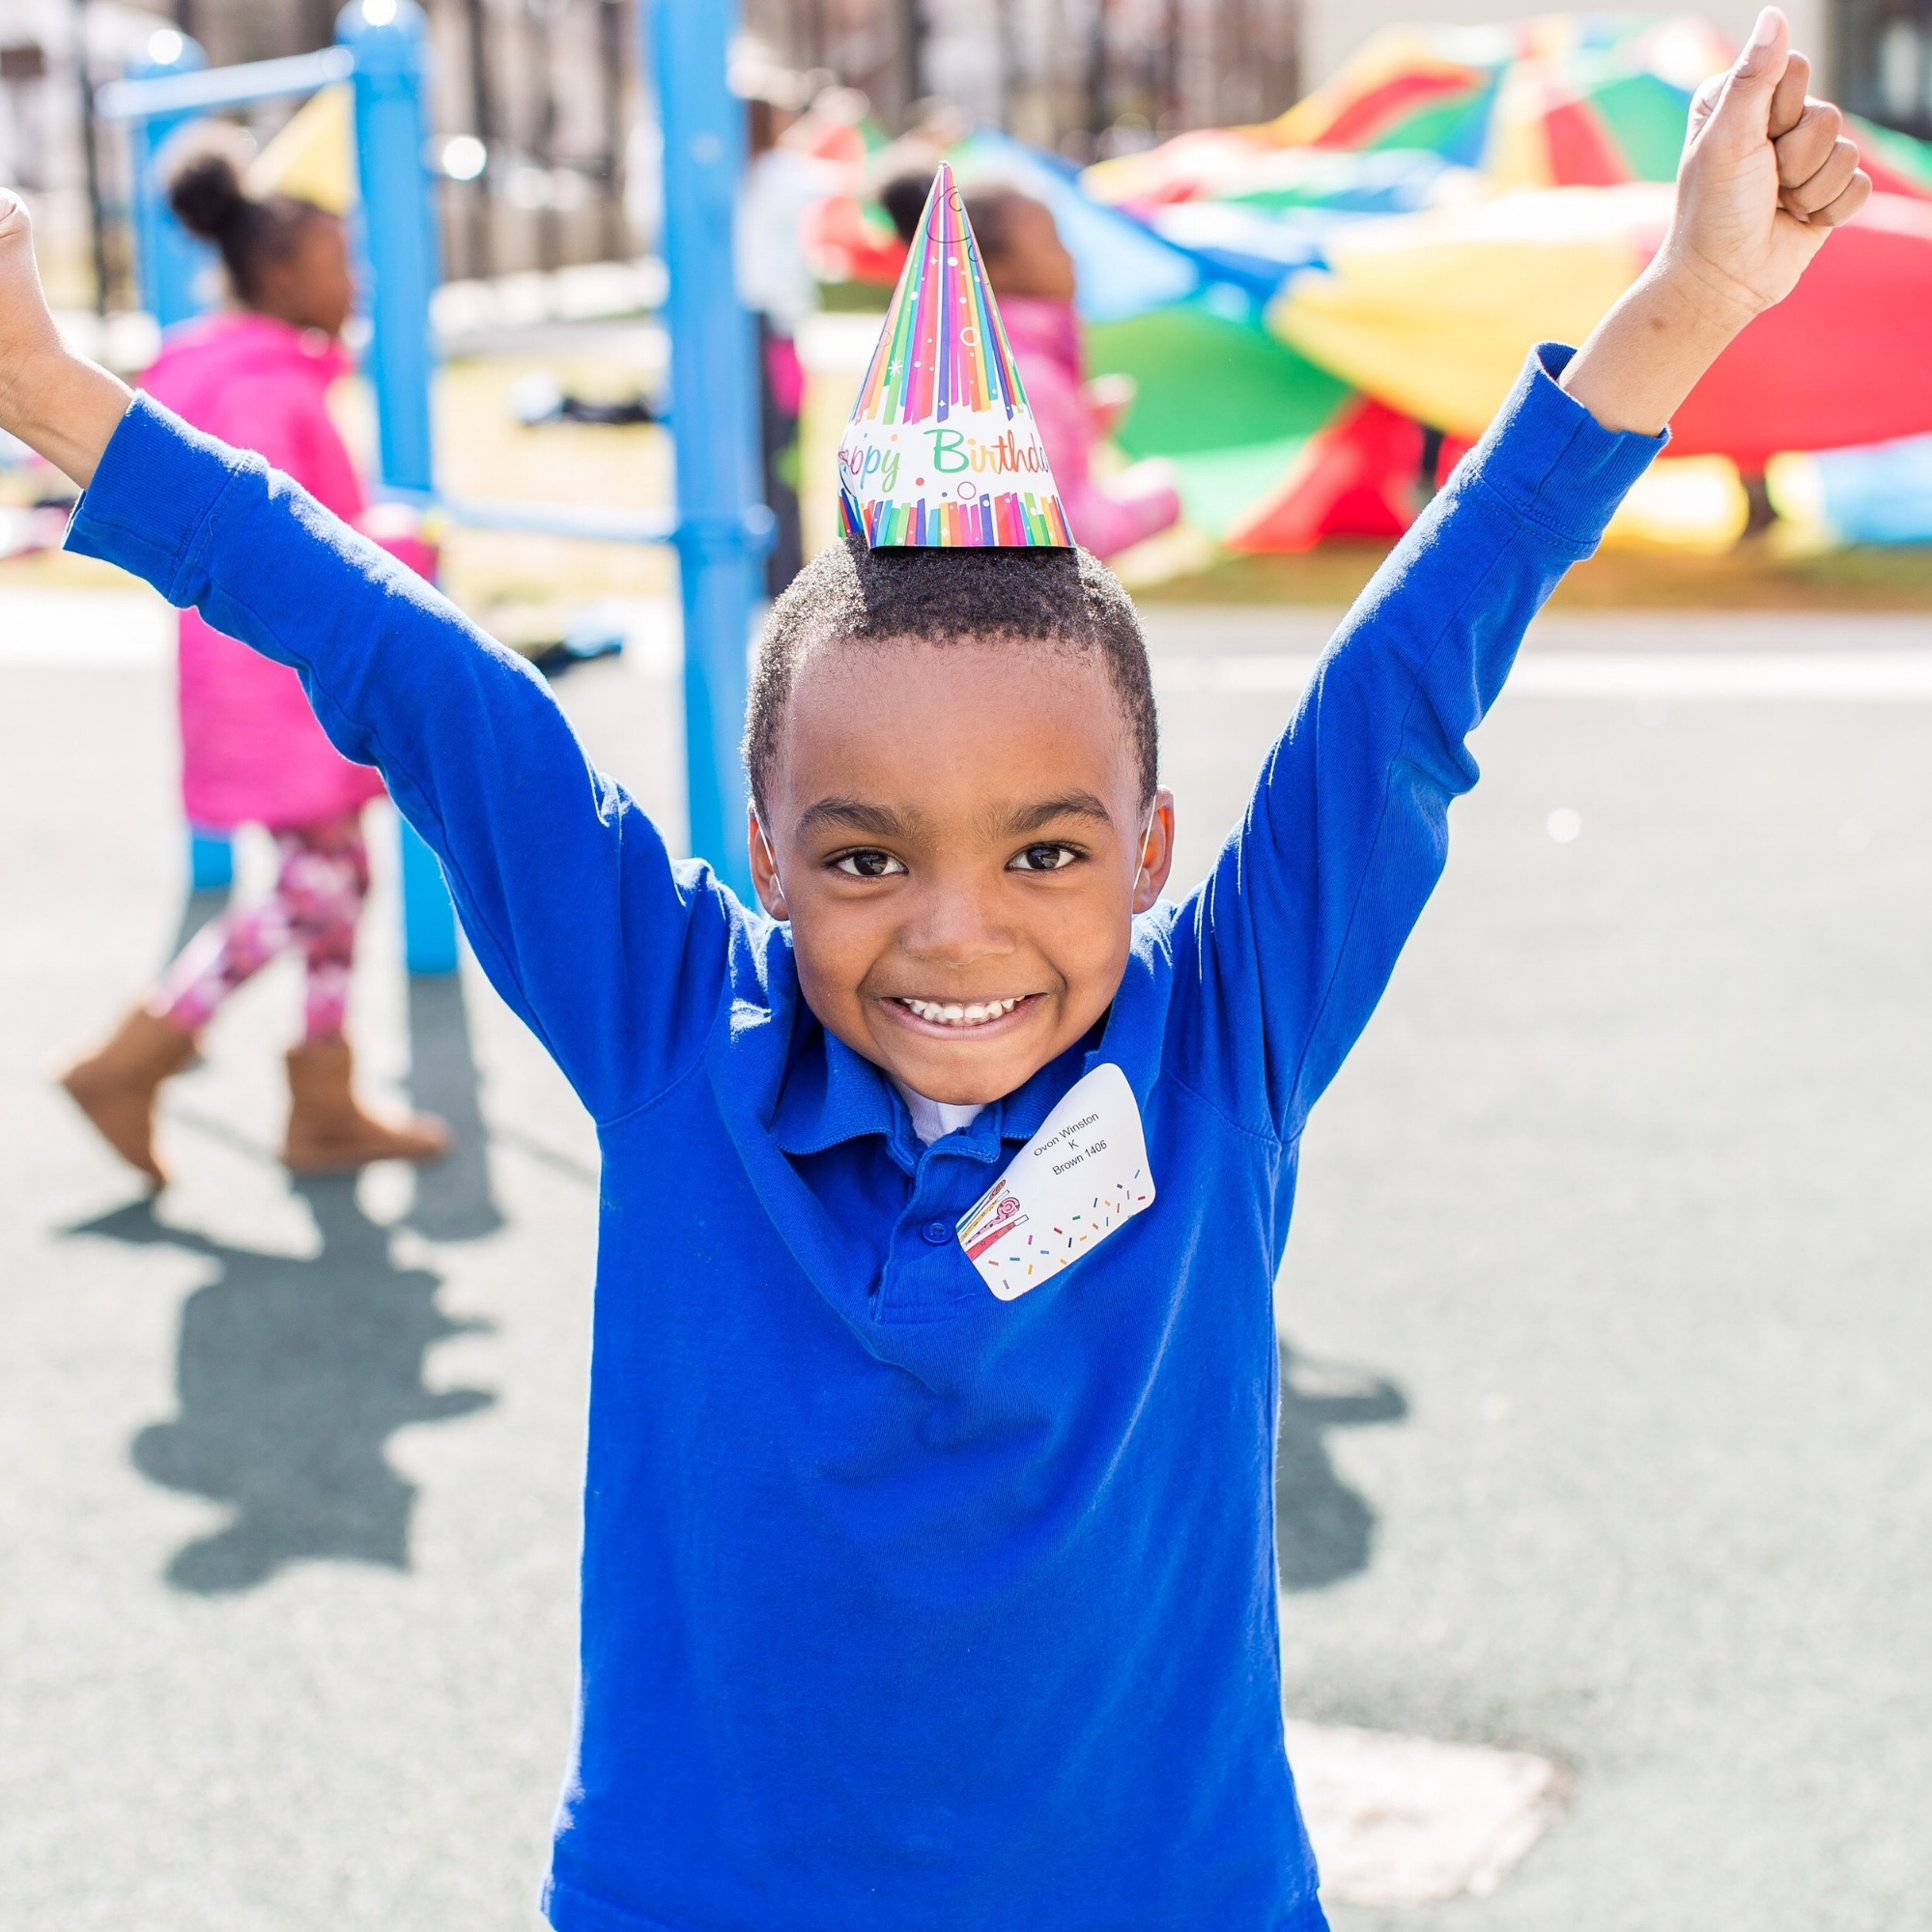 a new community space for kids - to celebrate every child, every day.we will play, learn, and eat lots of cake, but above all, we will wrap our city in love and joy, so that we can impact hearts for generations to come.